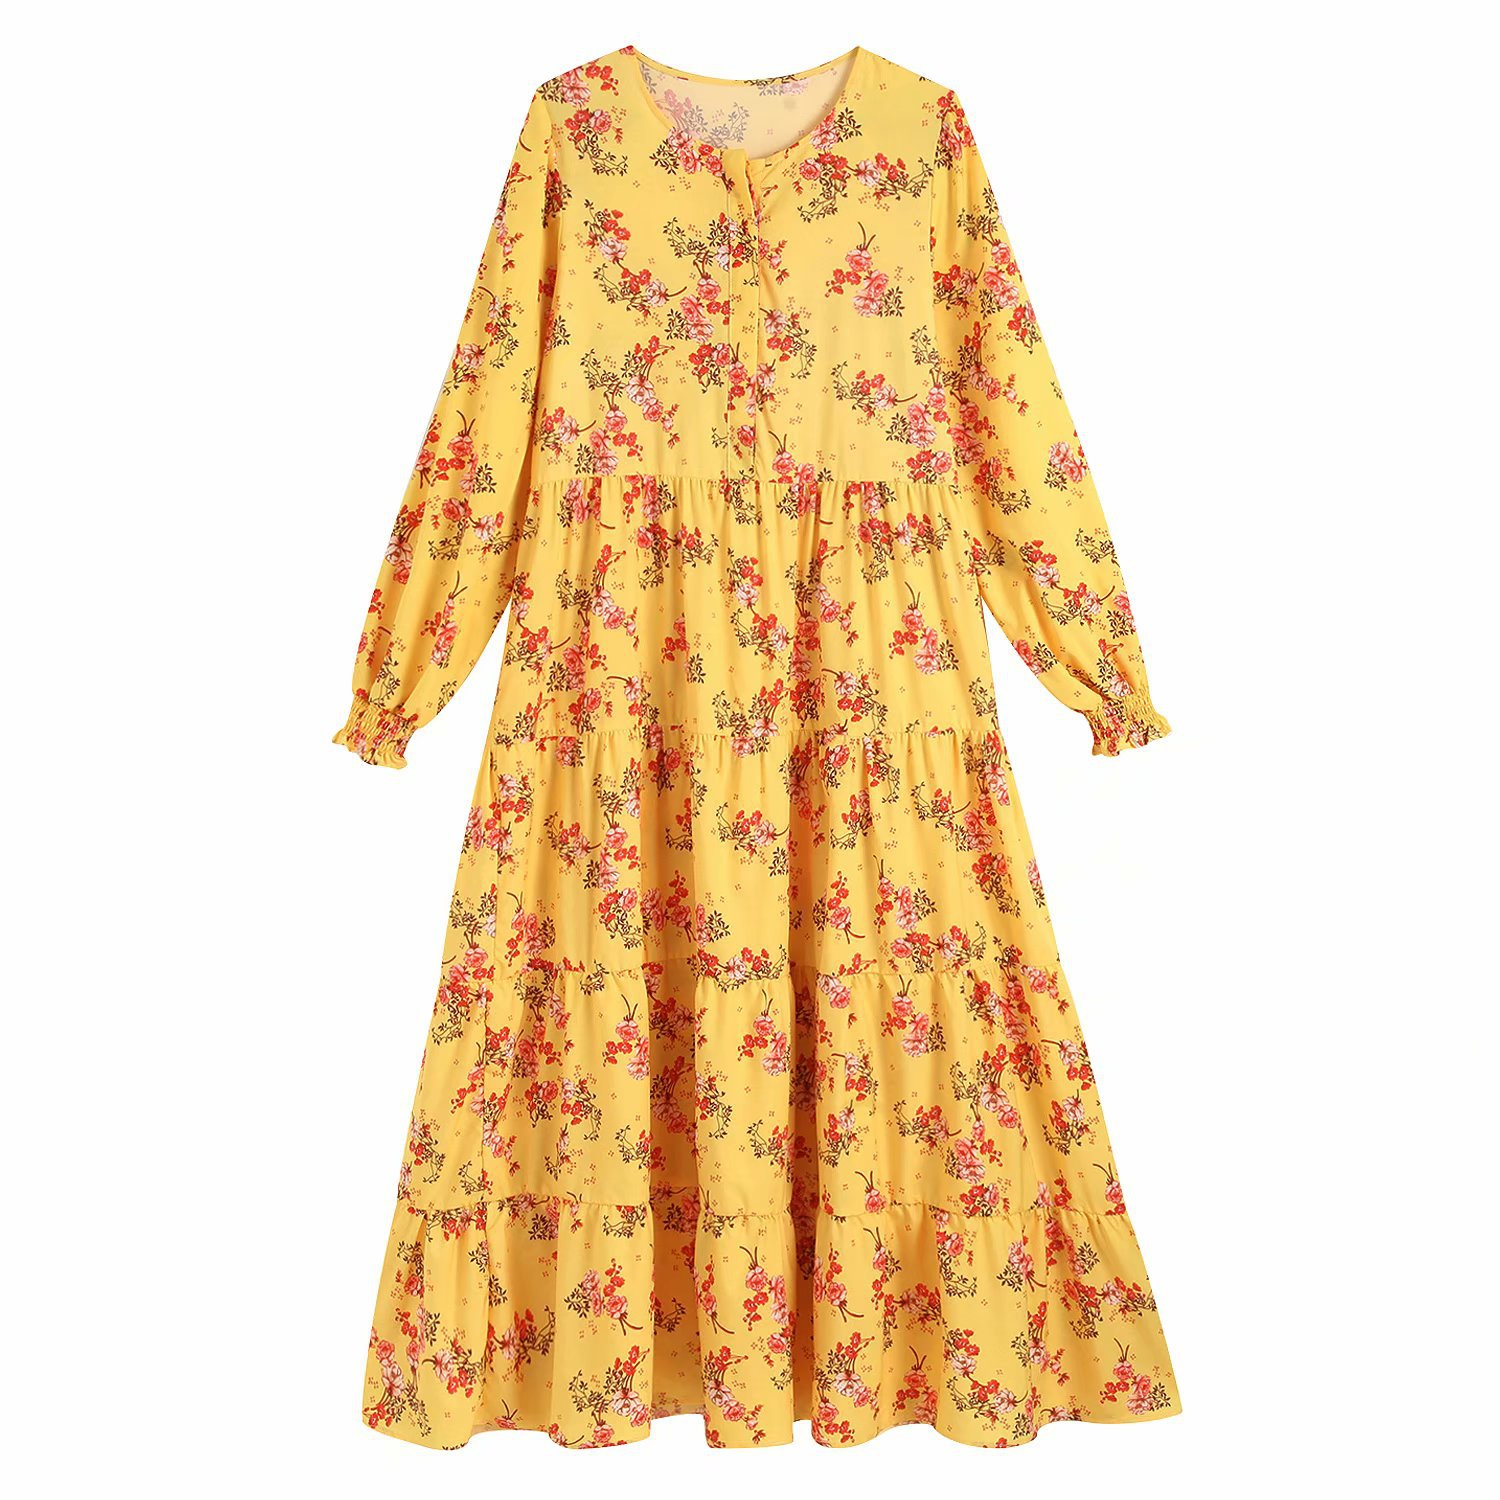 Women Vintage Floral Print O Neck Chic Maxi Dress Boho Female Long Sleeve Stylish Chic Ankle Length Dresses Vestidos